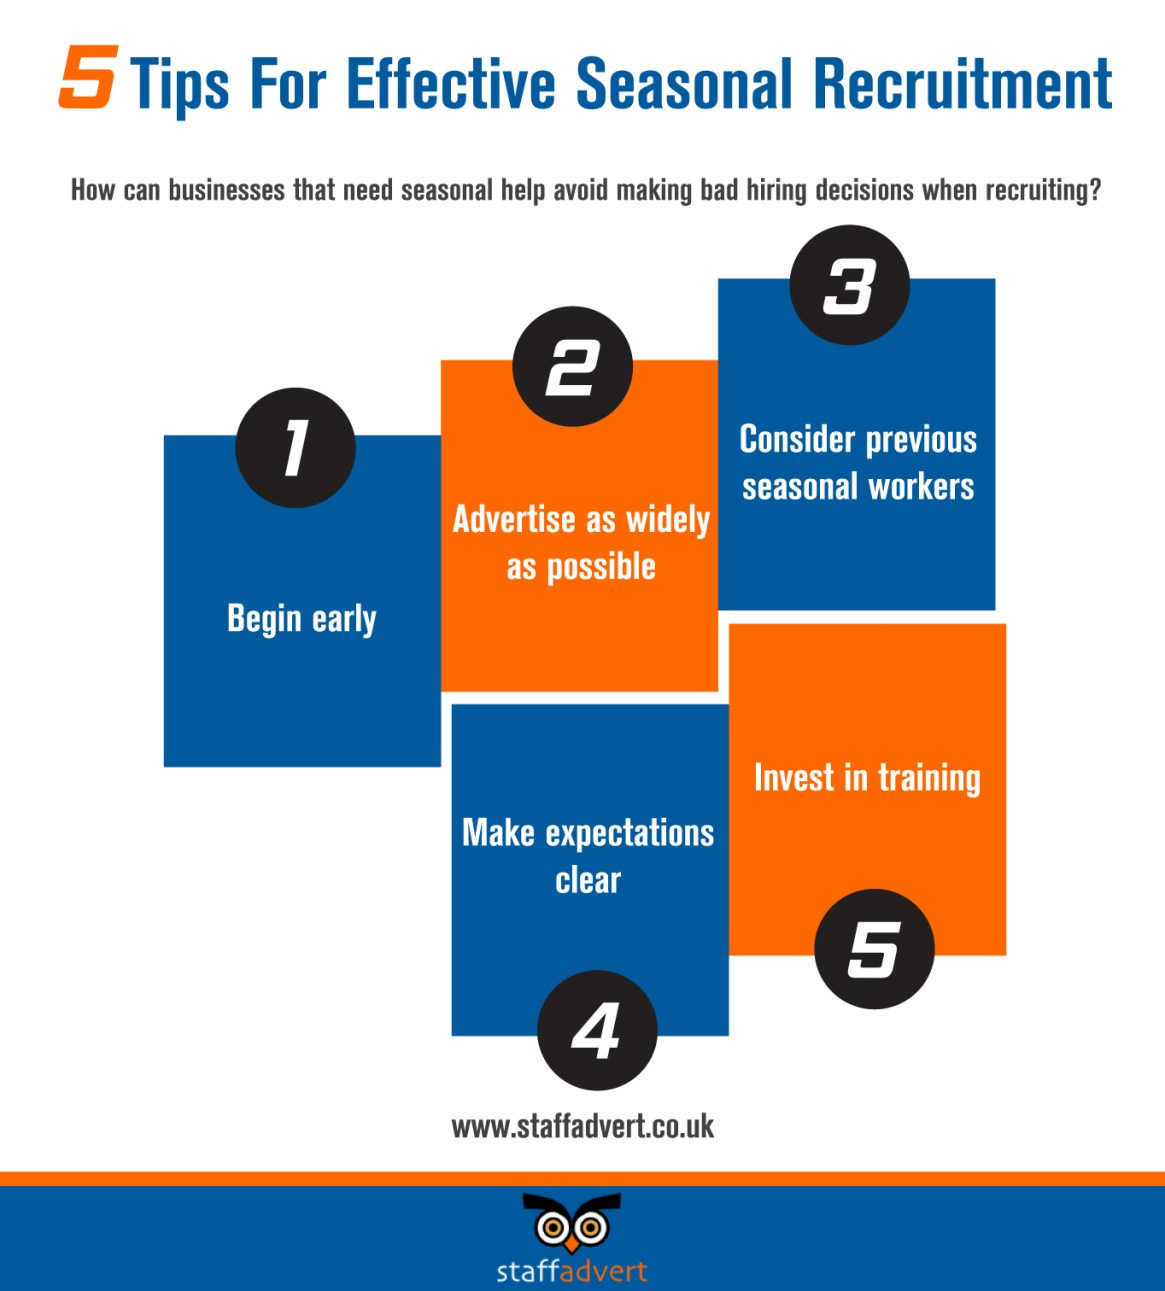 5 Tips For Effective Seasonal Recruitment